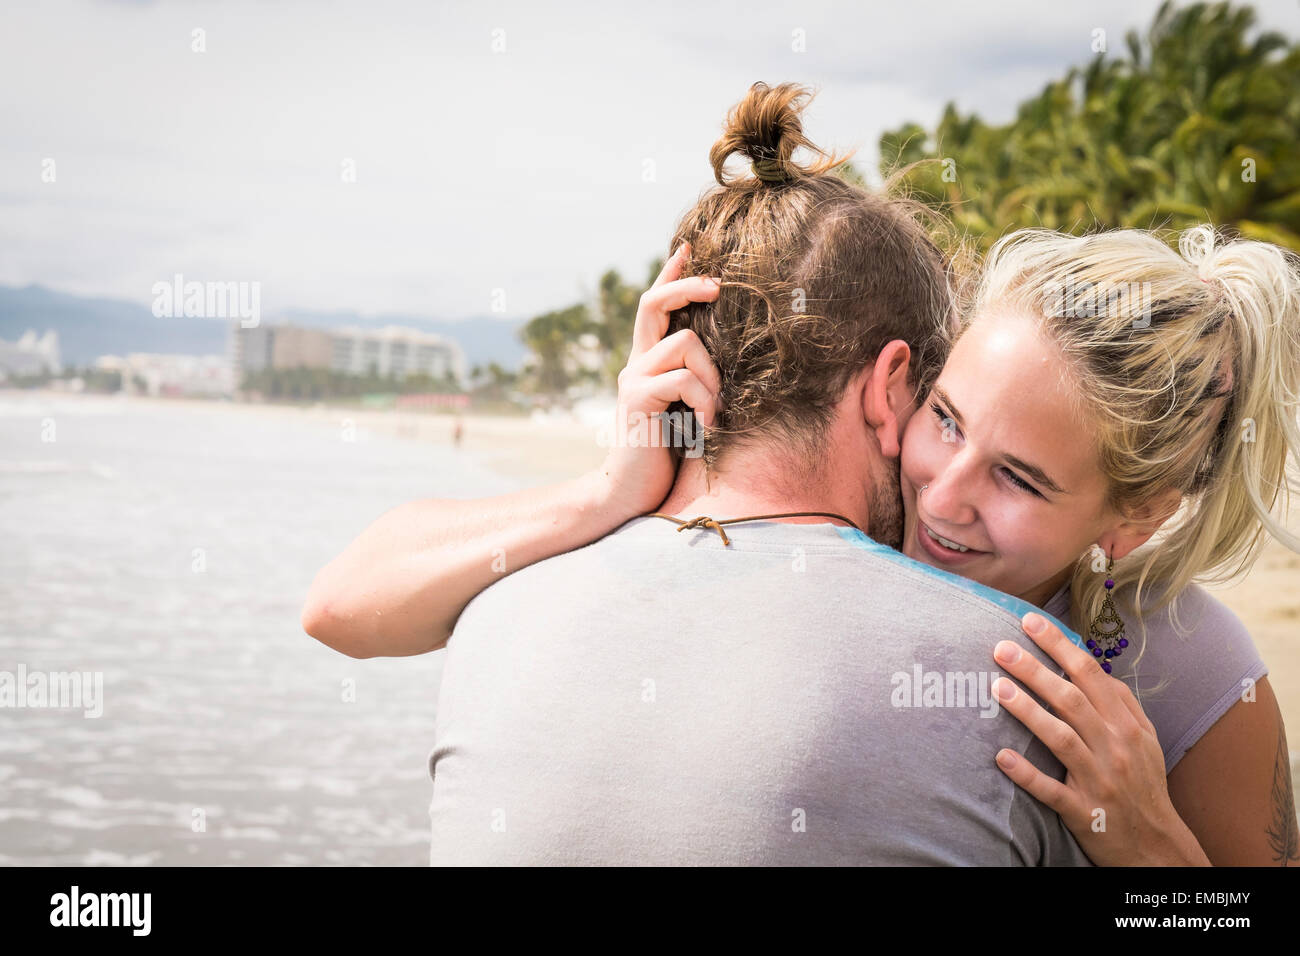 Young woman hugging young man, smiling, lors d'une plage. Riviera Nayarit, la côte du Pacifique, Mexique Photo Stock